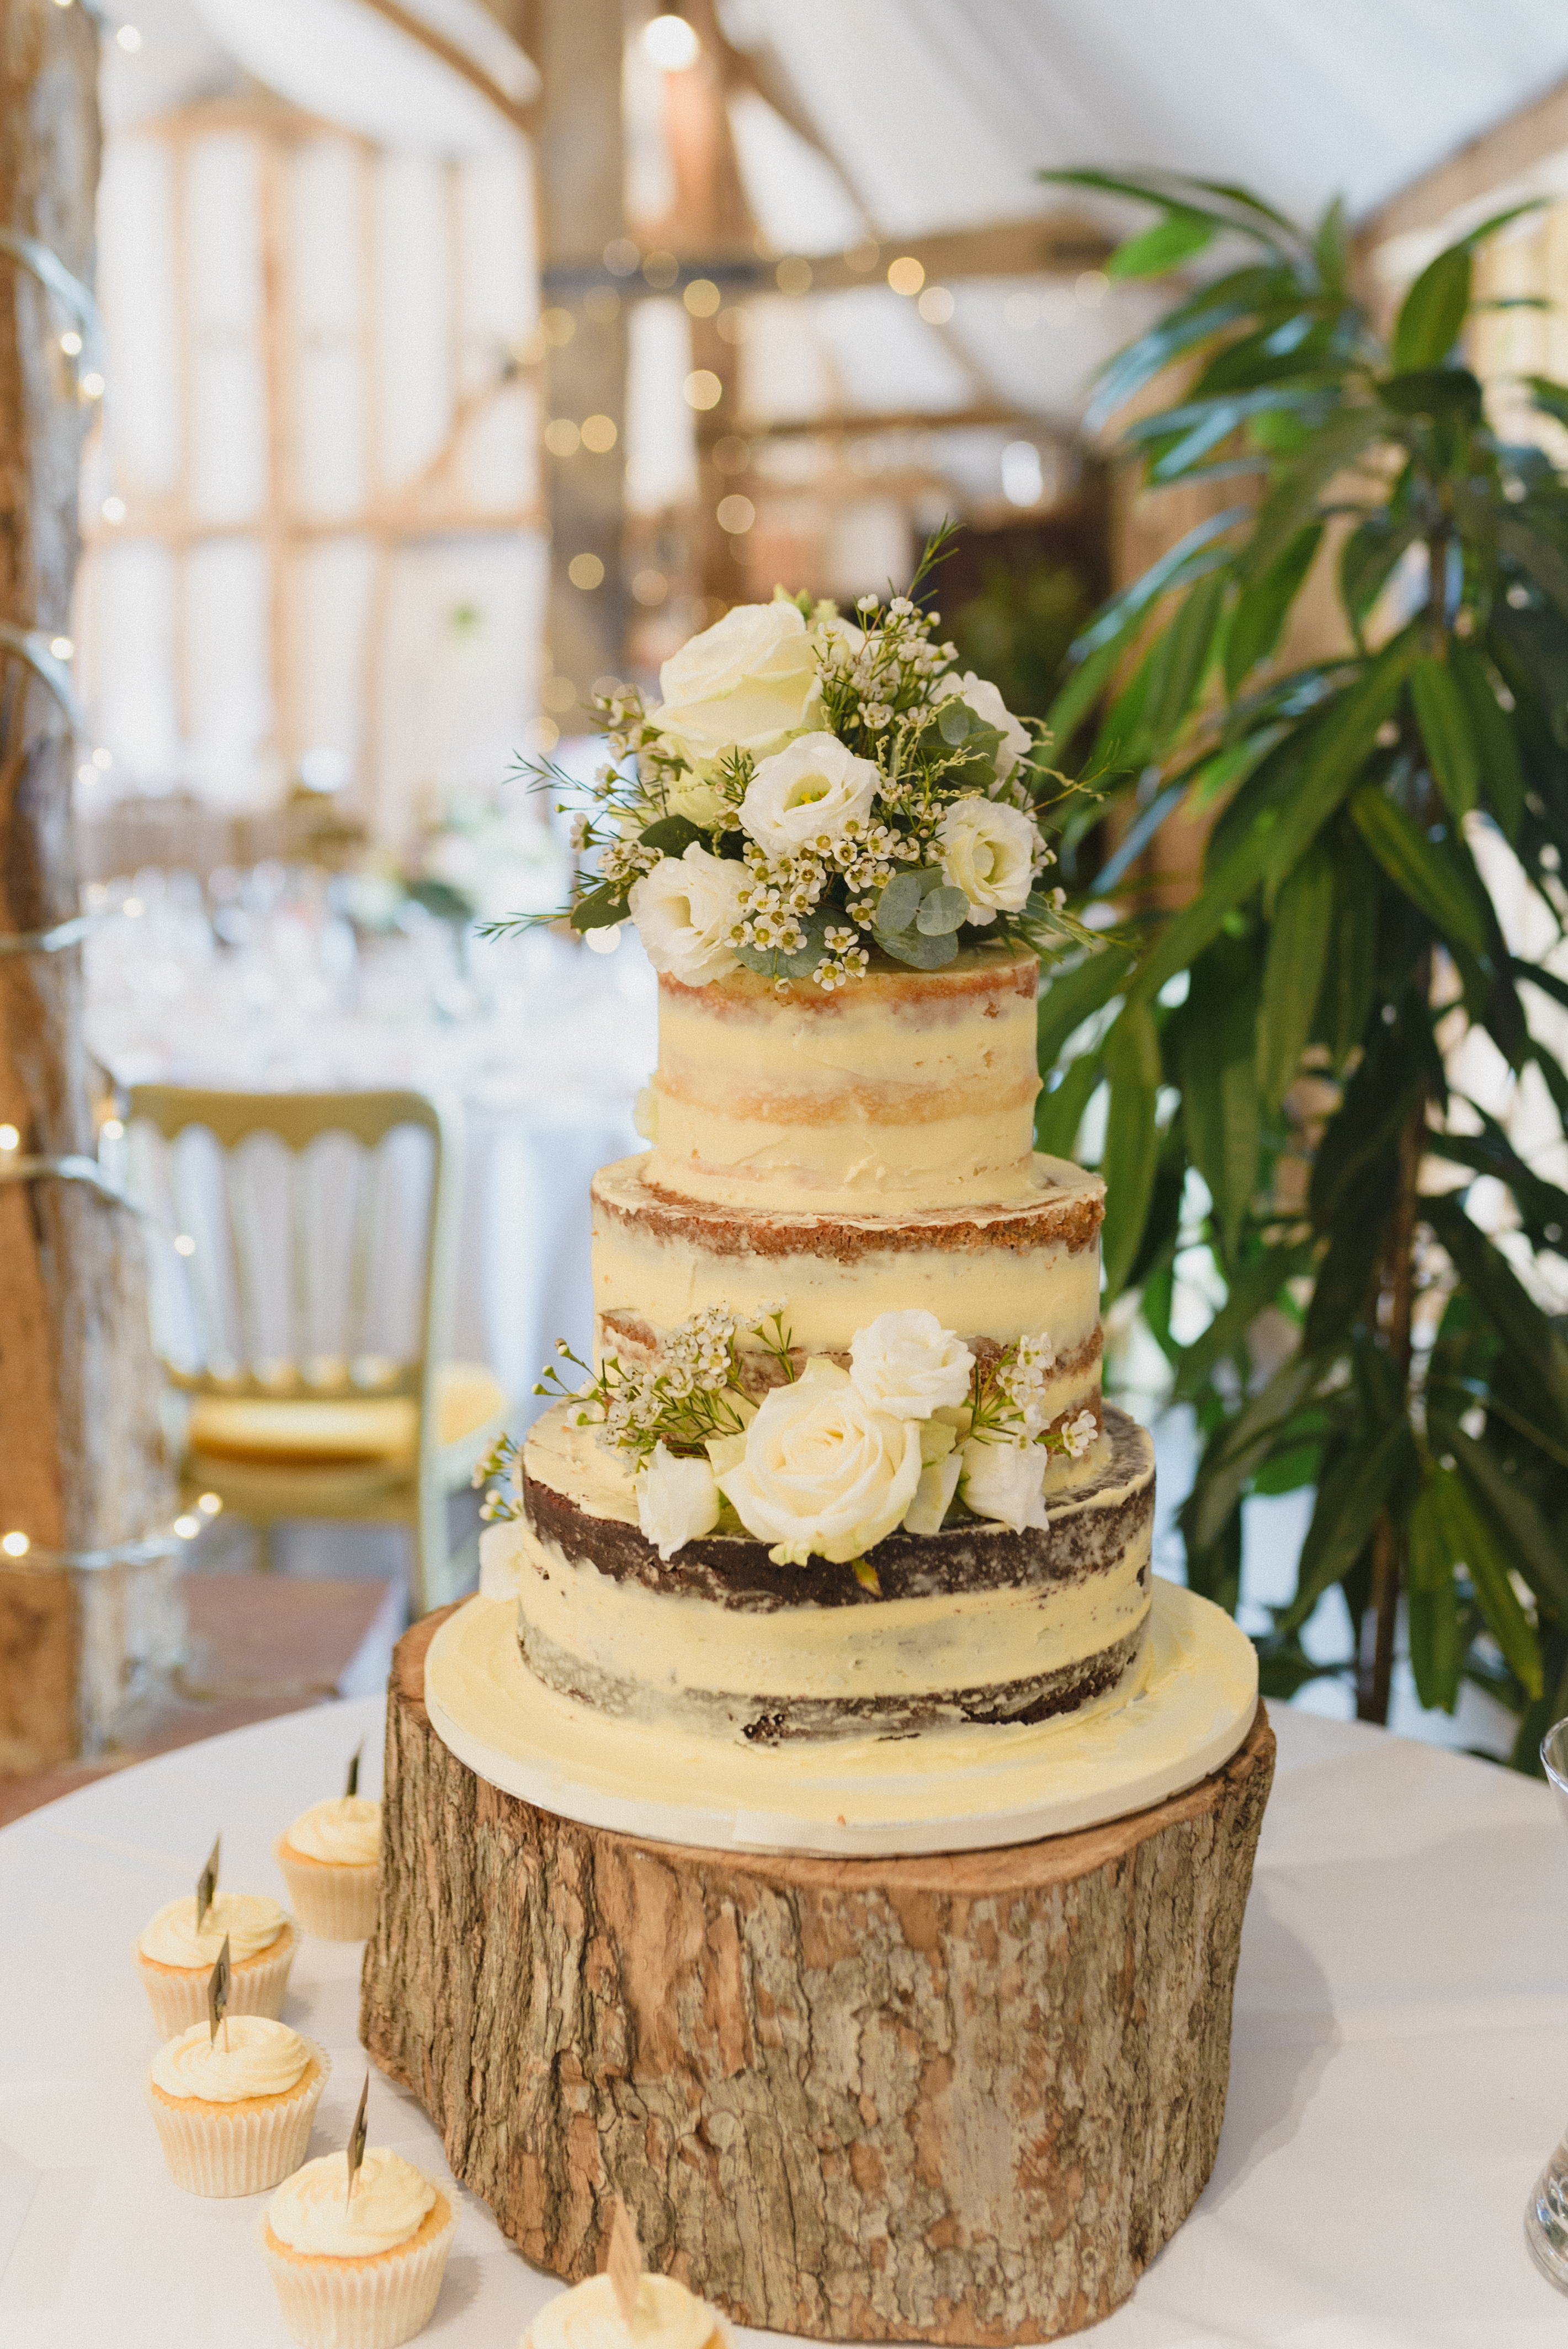 Bespoke Artisan Wedding Cakes in Cambridgeshire